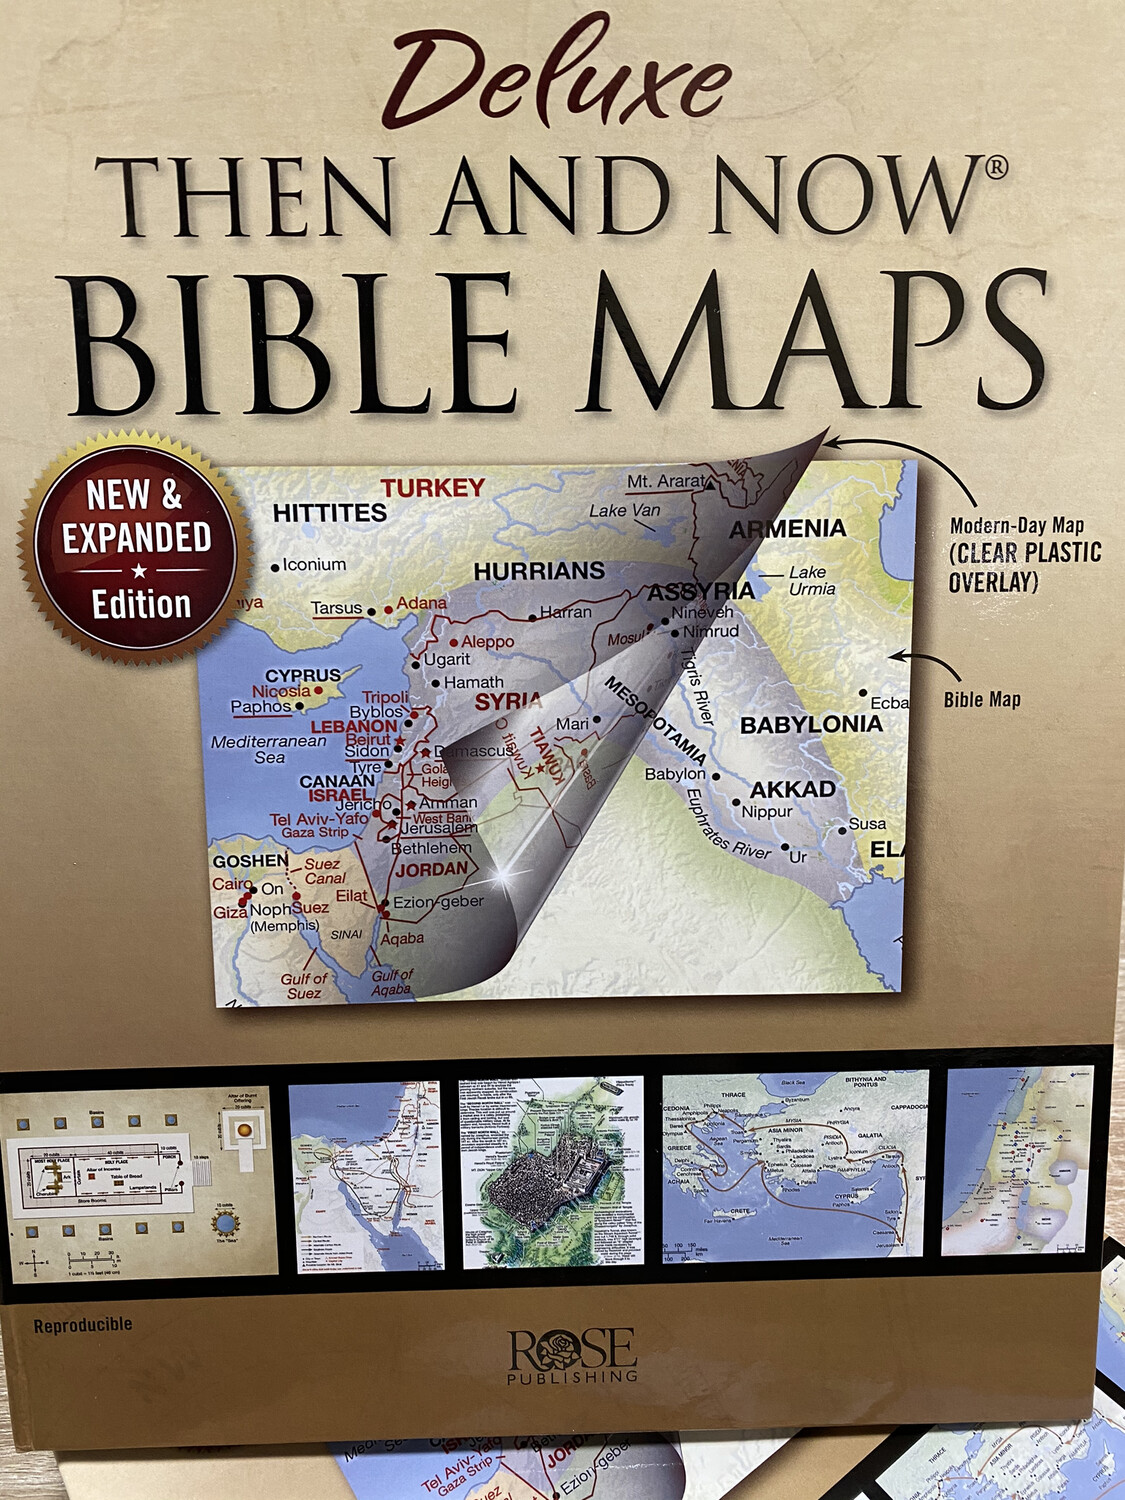 Then and Now Bible Maps Rose Publishing